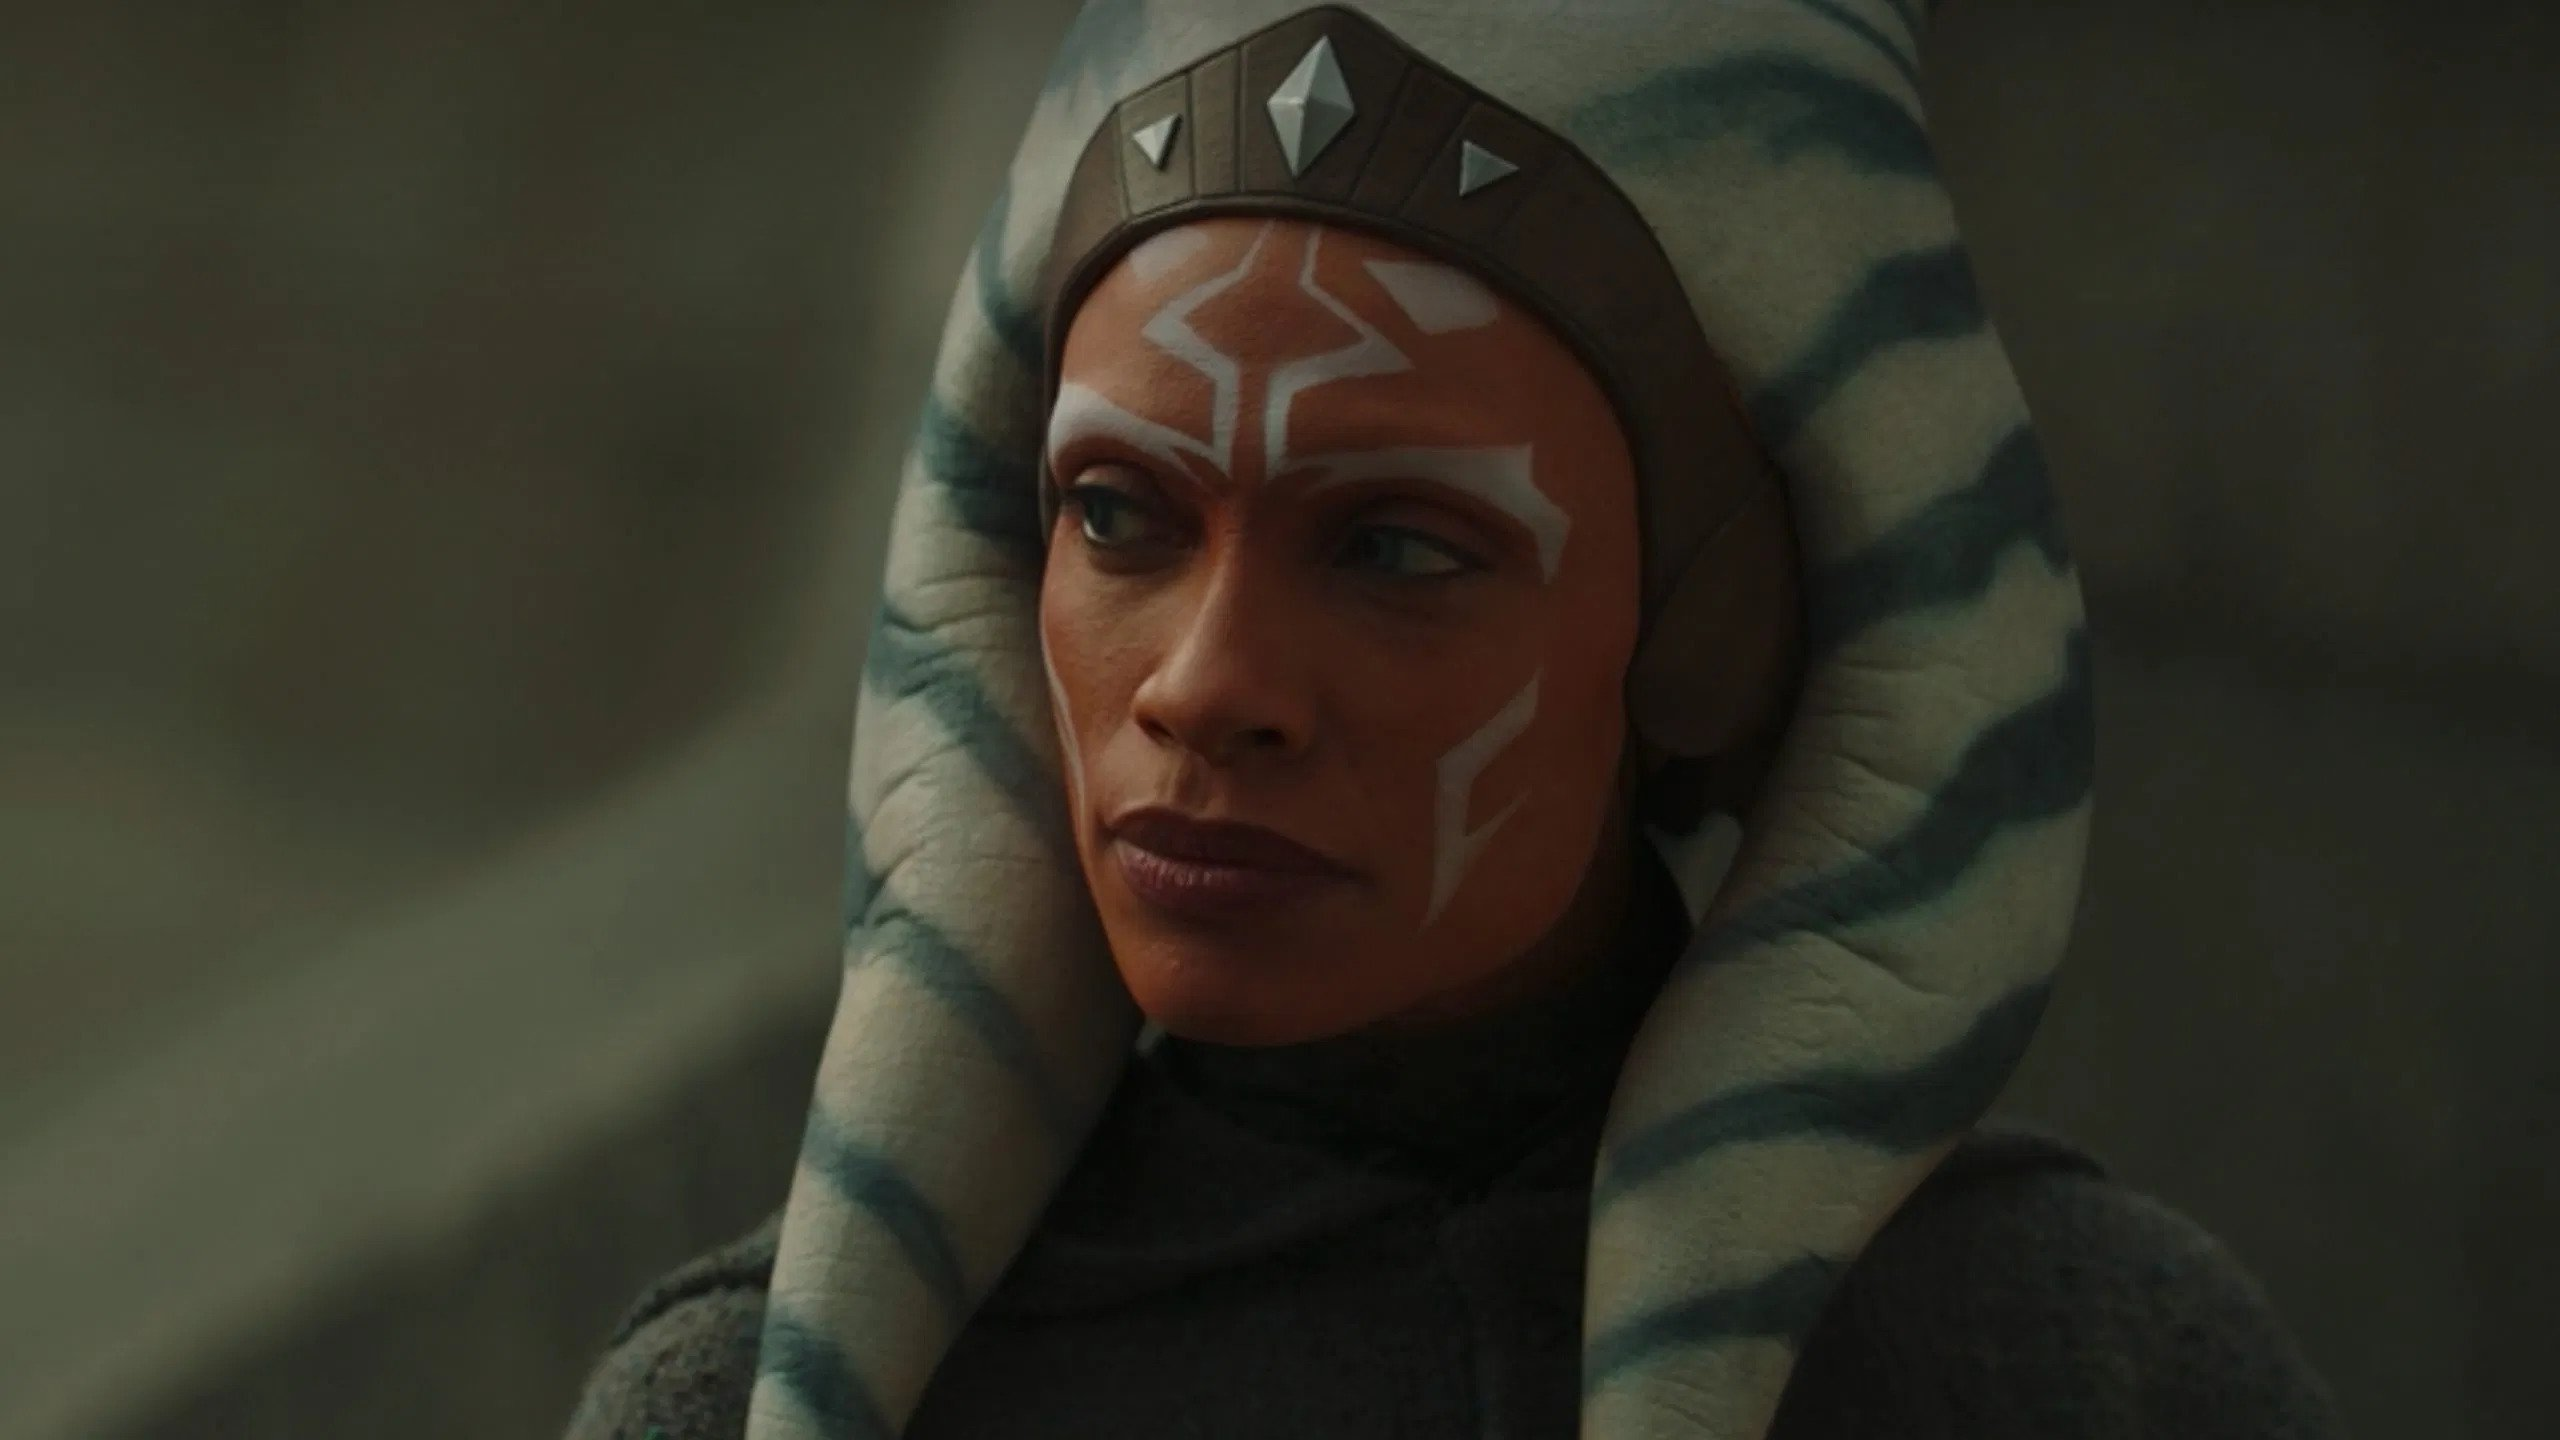 Rosario Dawson in The Mandalorian